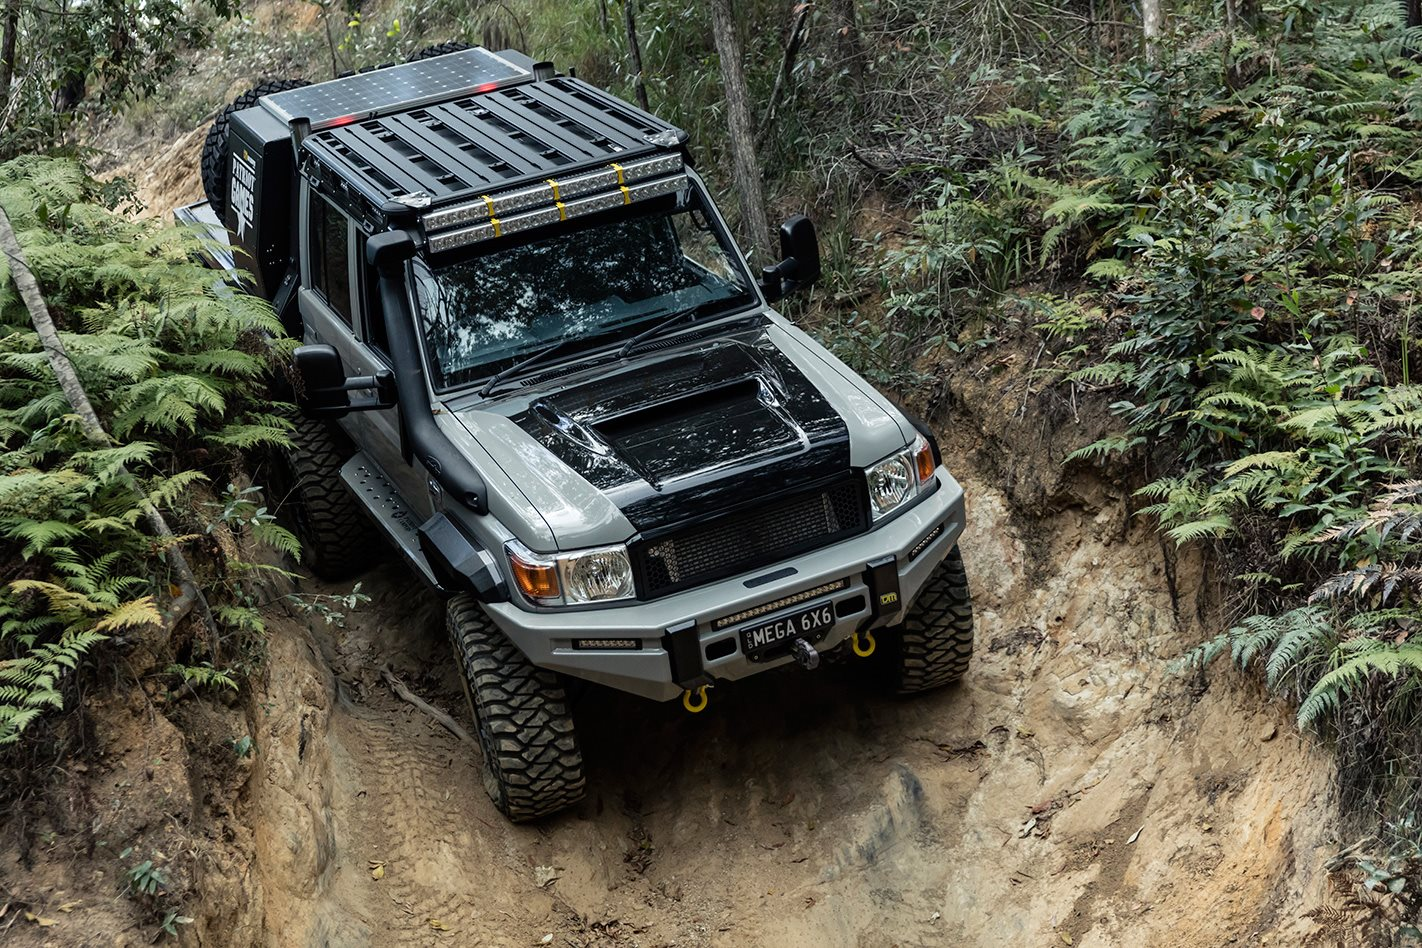 Patriot Campers Lc79 6x6 Review Toyota Mega Cruiser In Usa 4wd Tracks